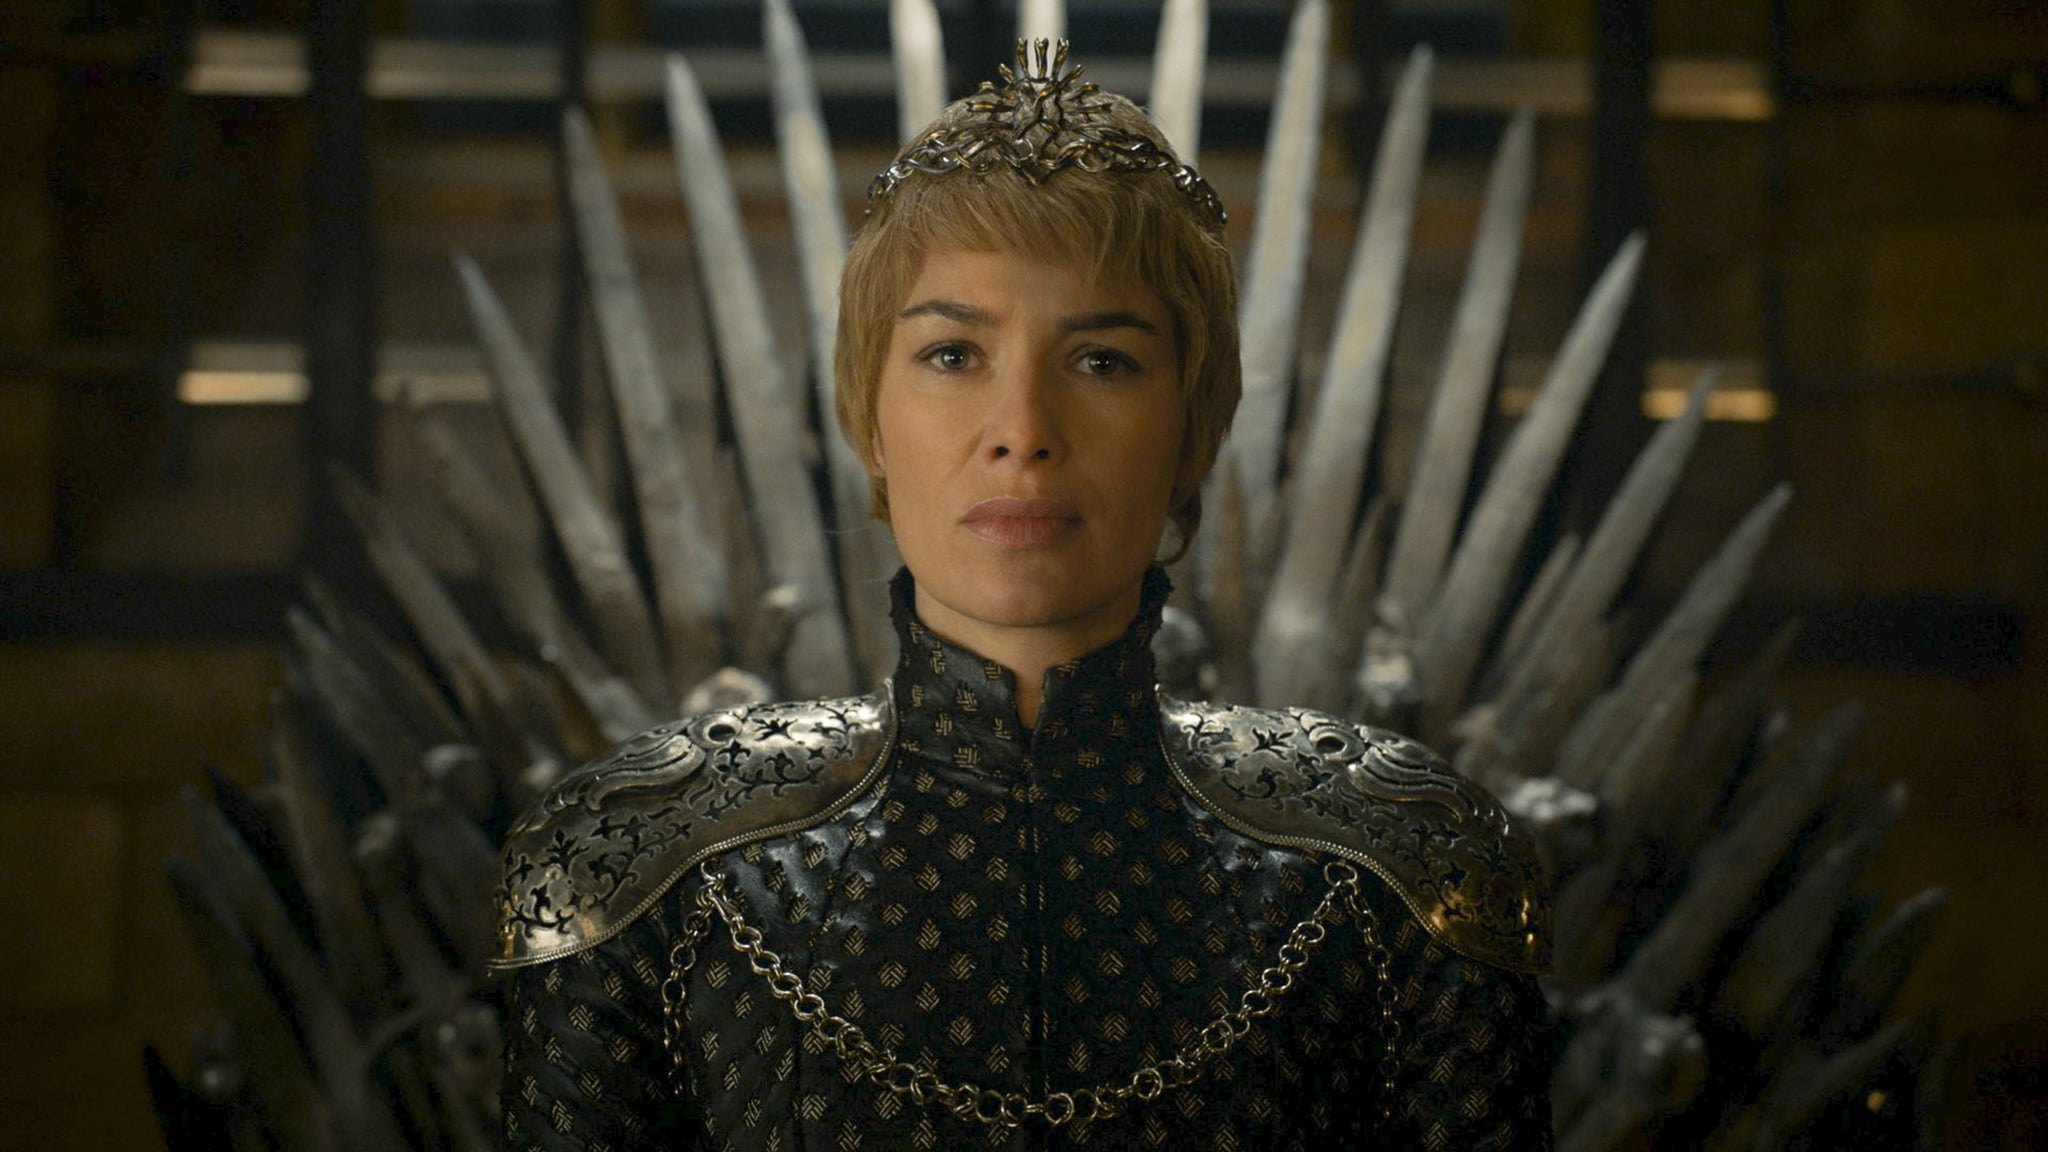 Lena Heady Quotes About Cersei's Death on Game of Thrones | POPSUGAR Entertainment UK